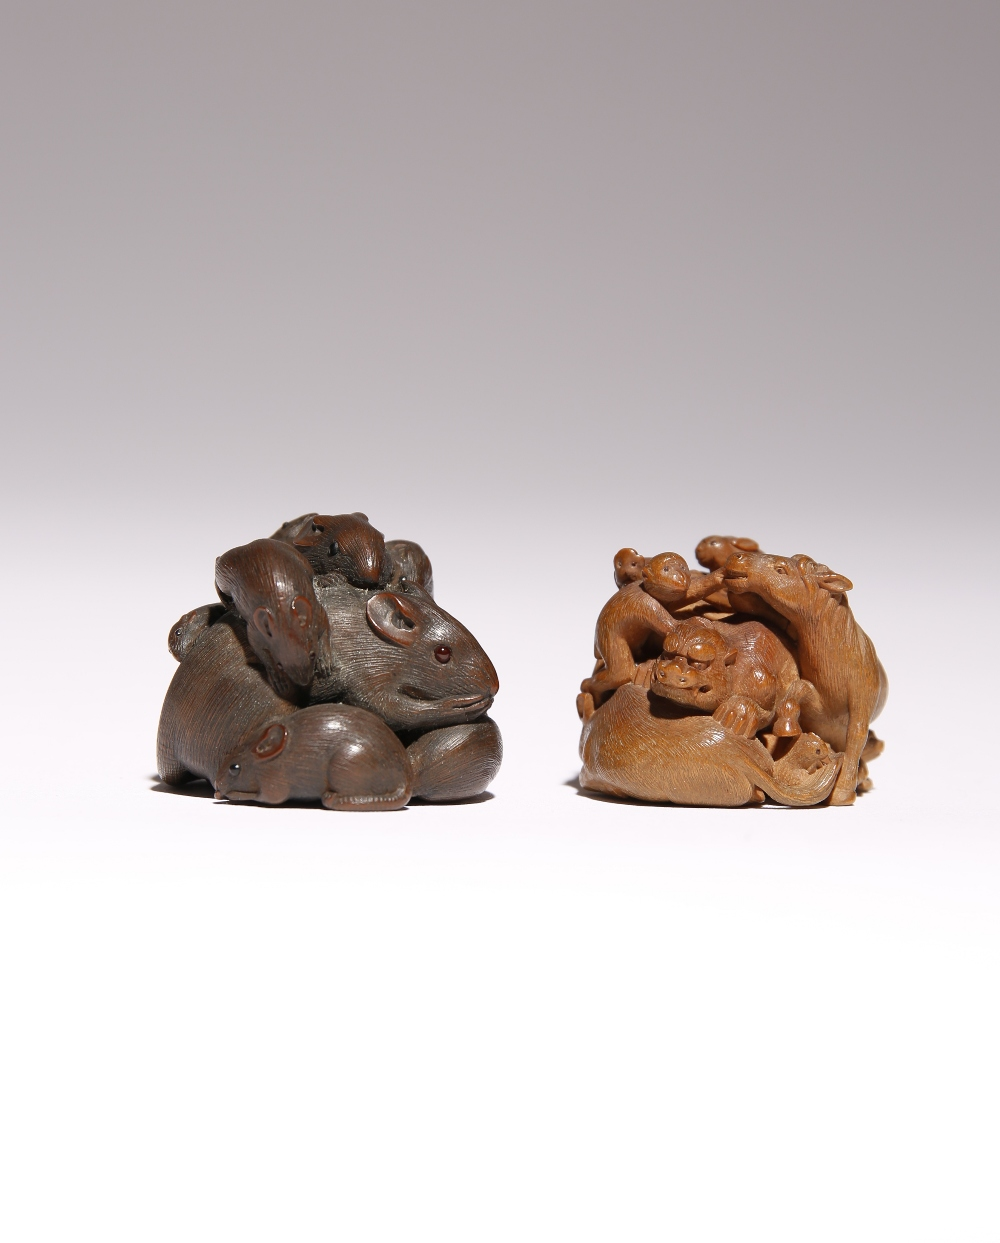 TWO JAPANESE WOOD NETSUKE OF ANIMALS MEIJI PERIOD, 19TH CENTURY The first intricately carved as